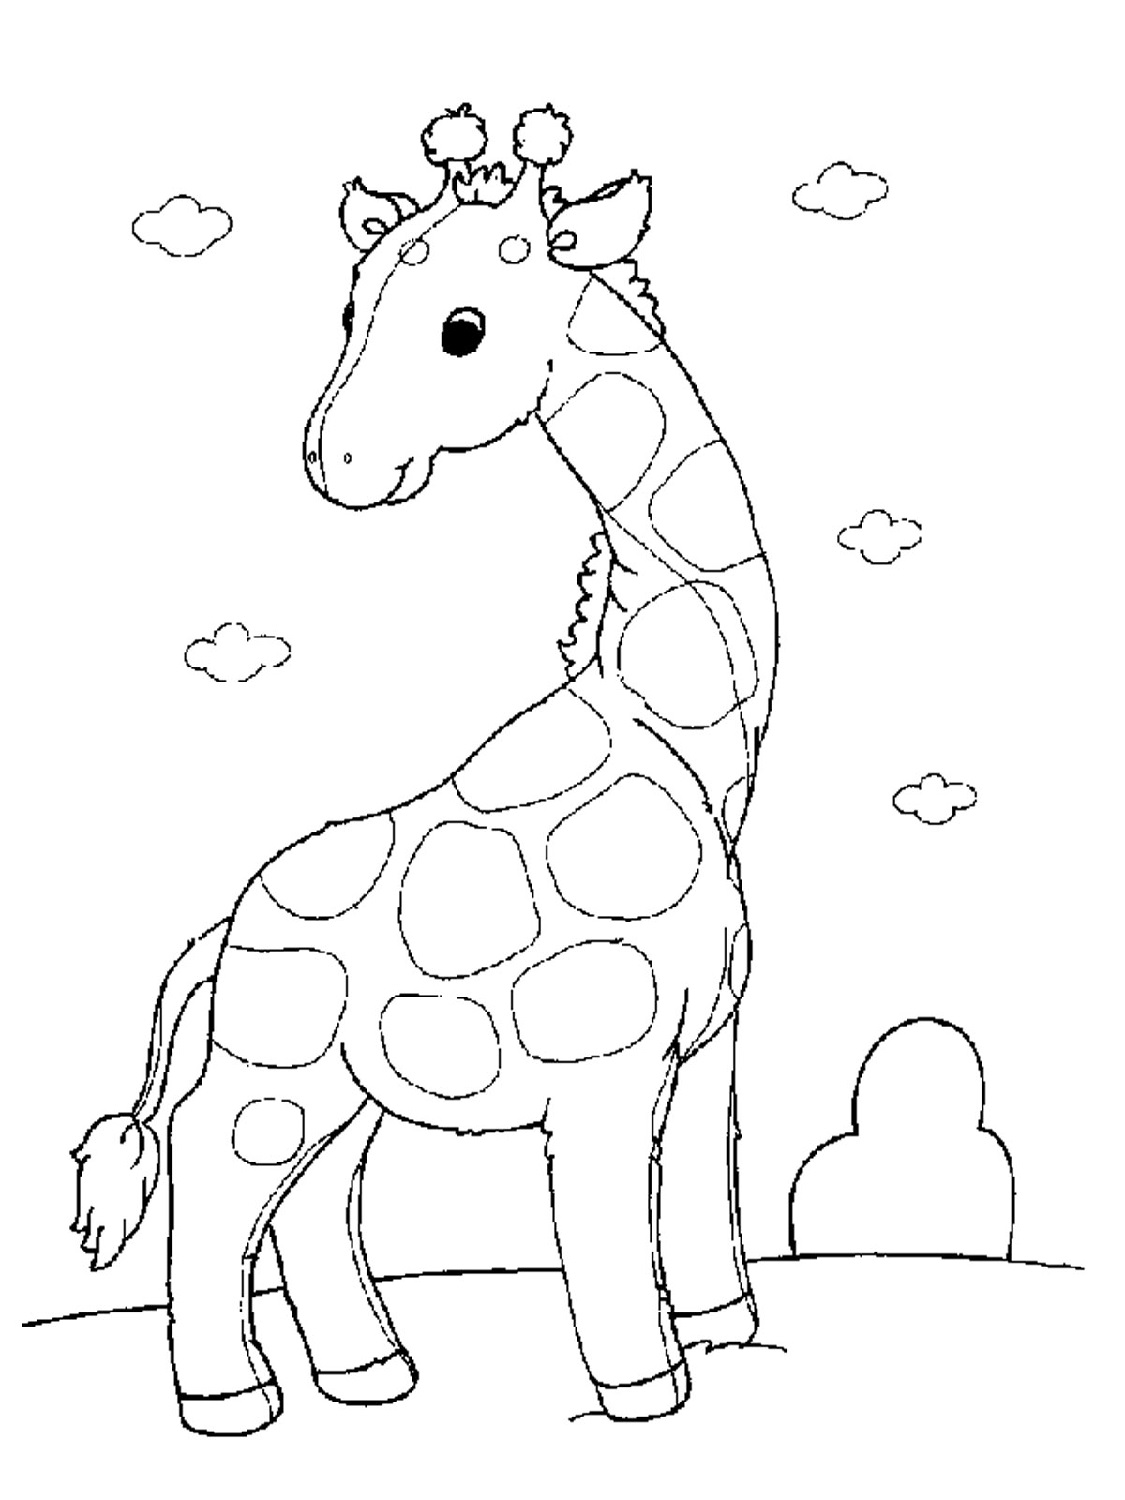 free-activity-pages-giraffe